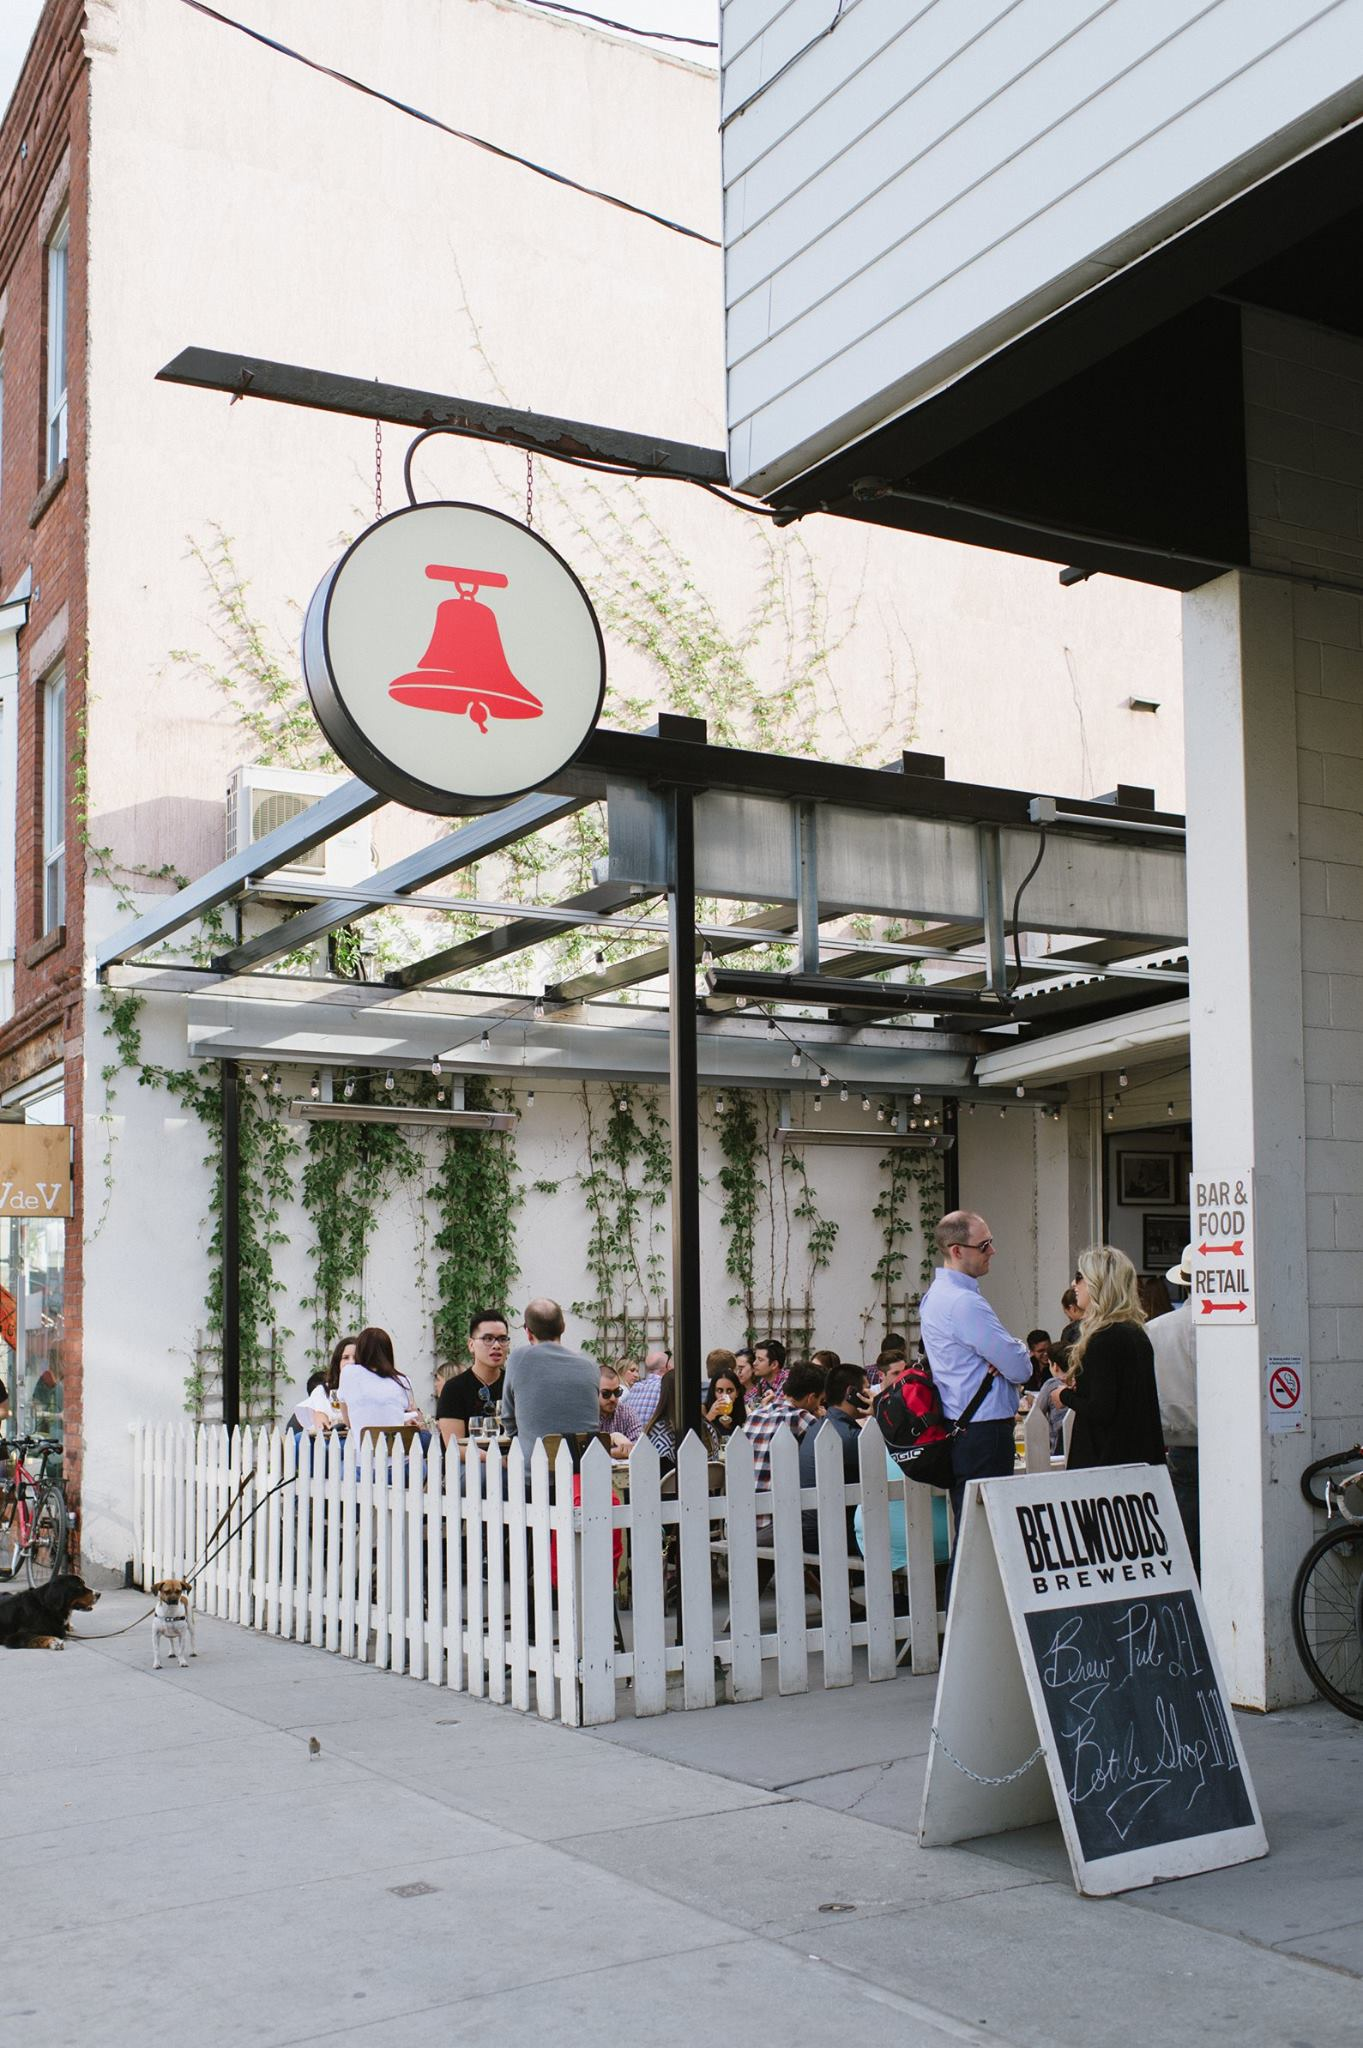 Bellwoods Brewery patio